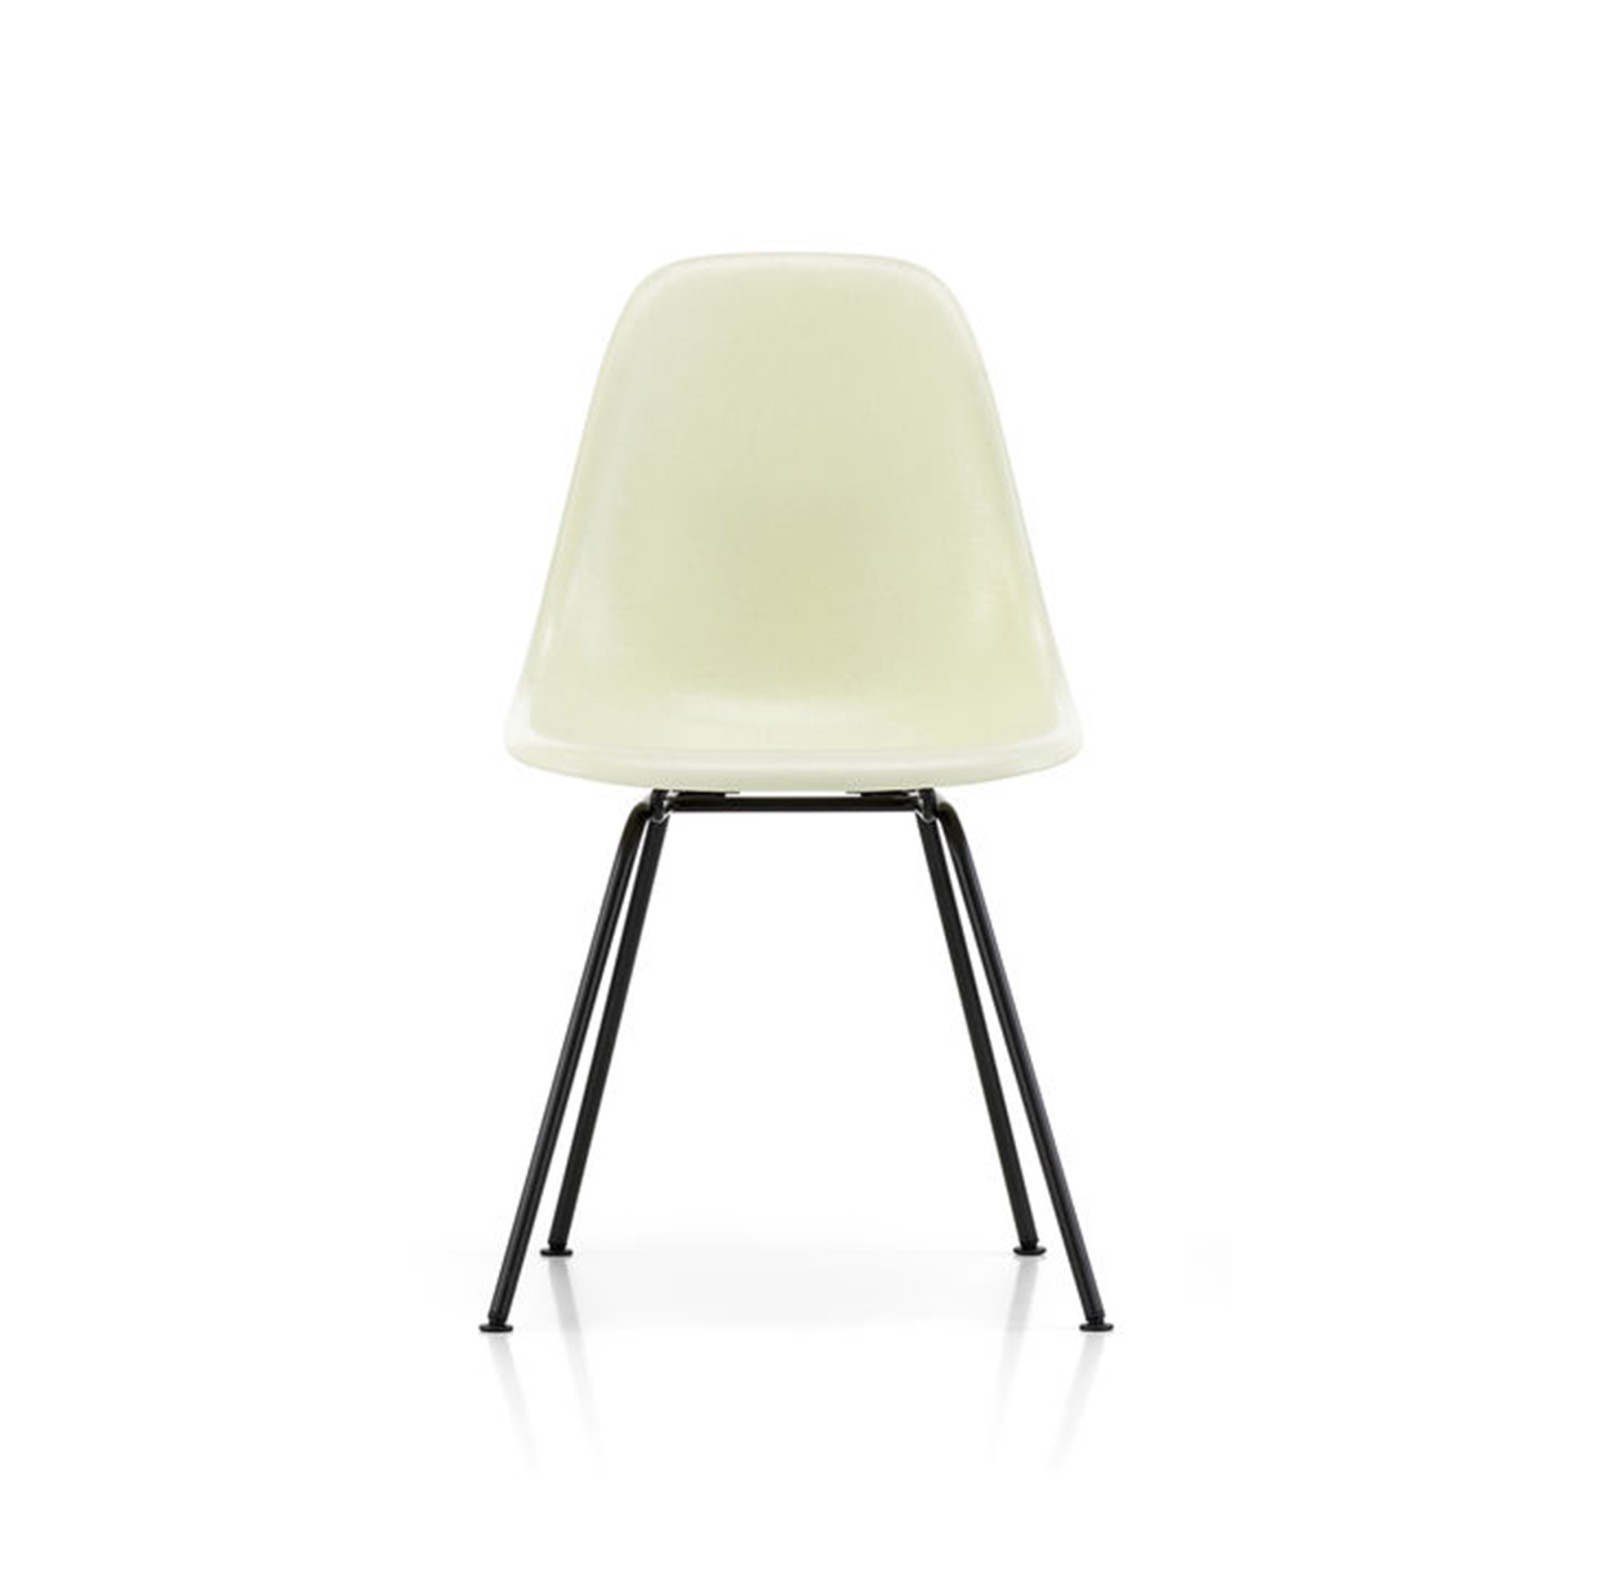 Vitra Eames Side Chair Vitra Eames Fiberglass Side Chair Dxs Kollekted By As